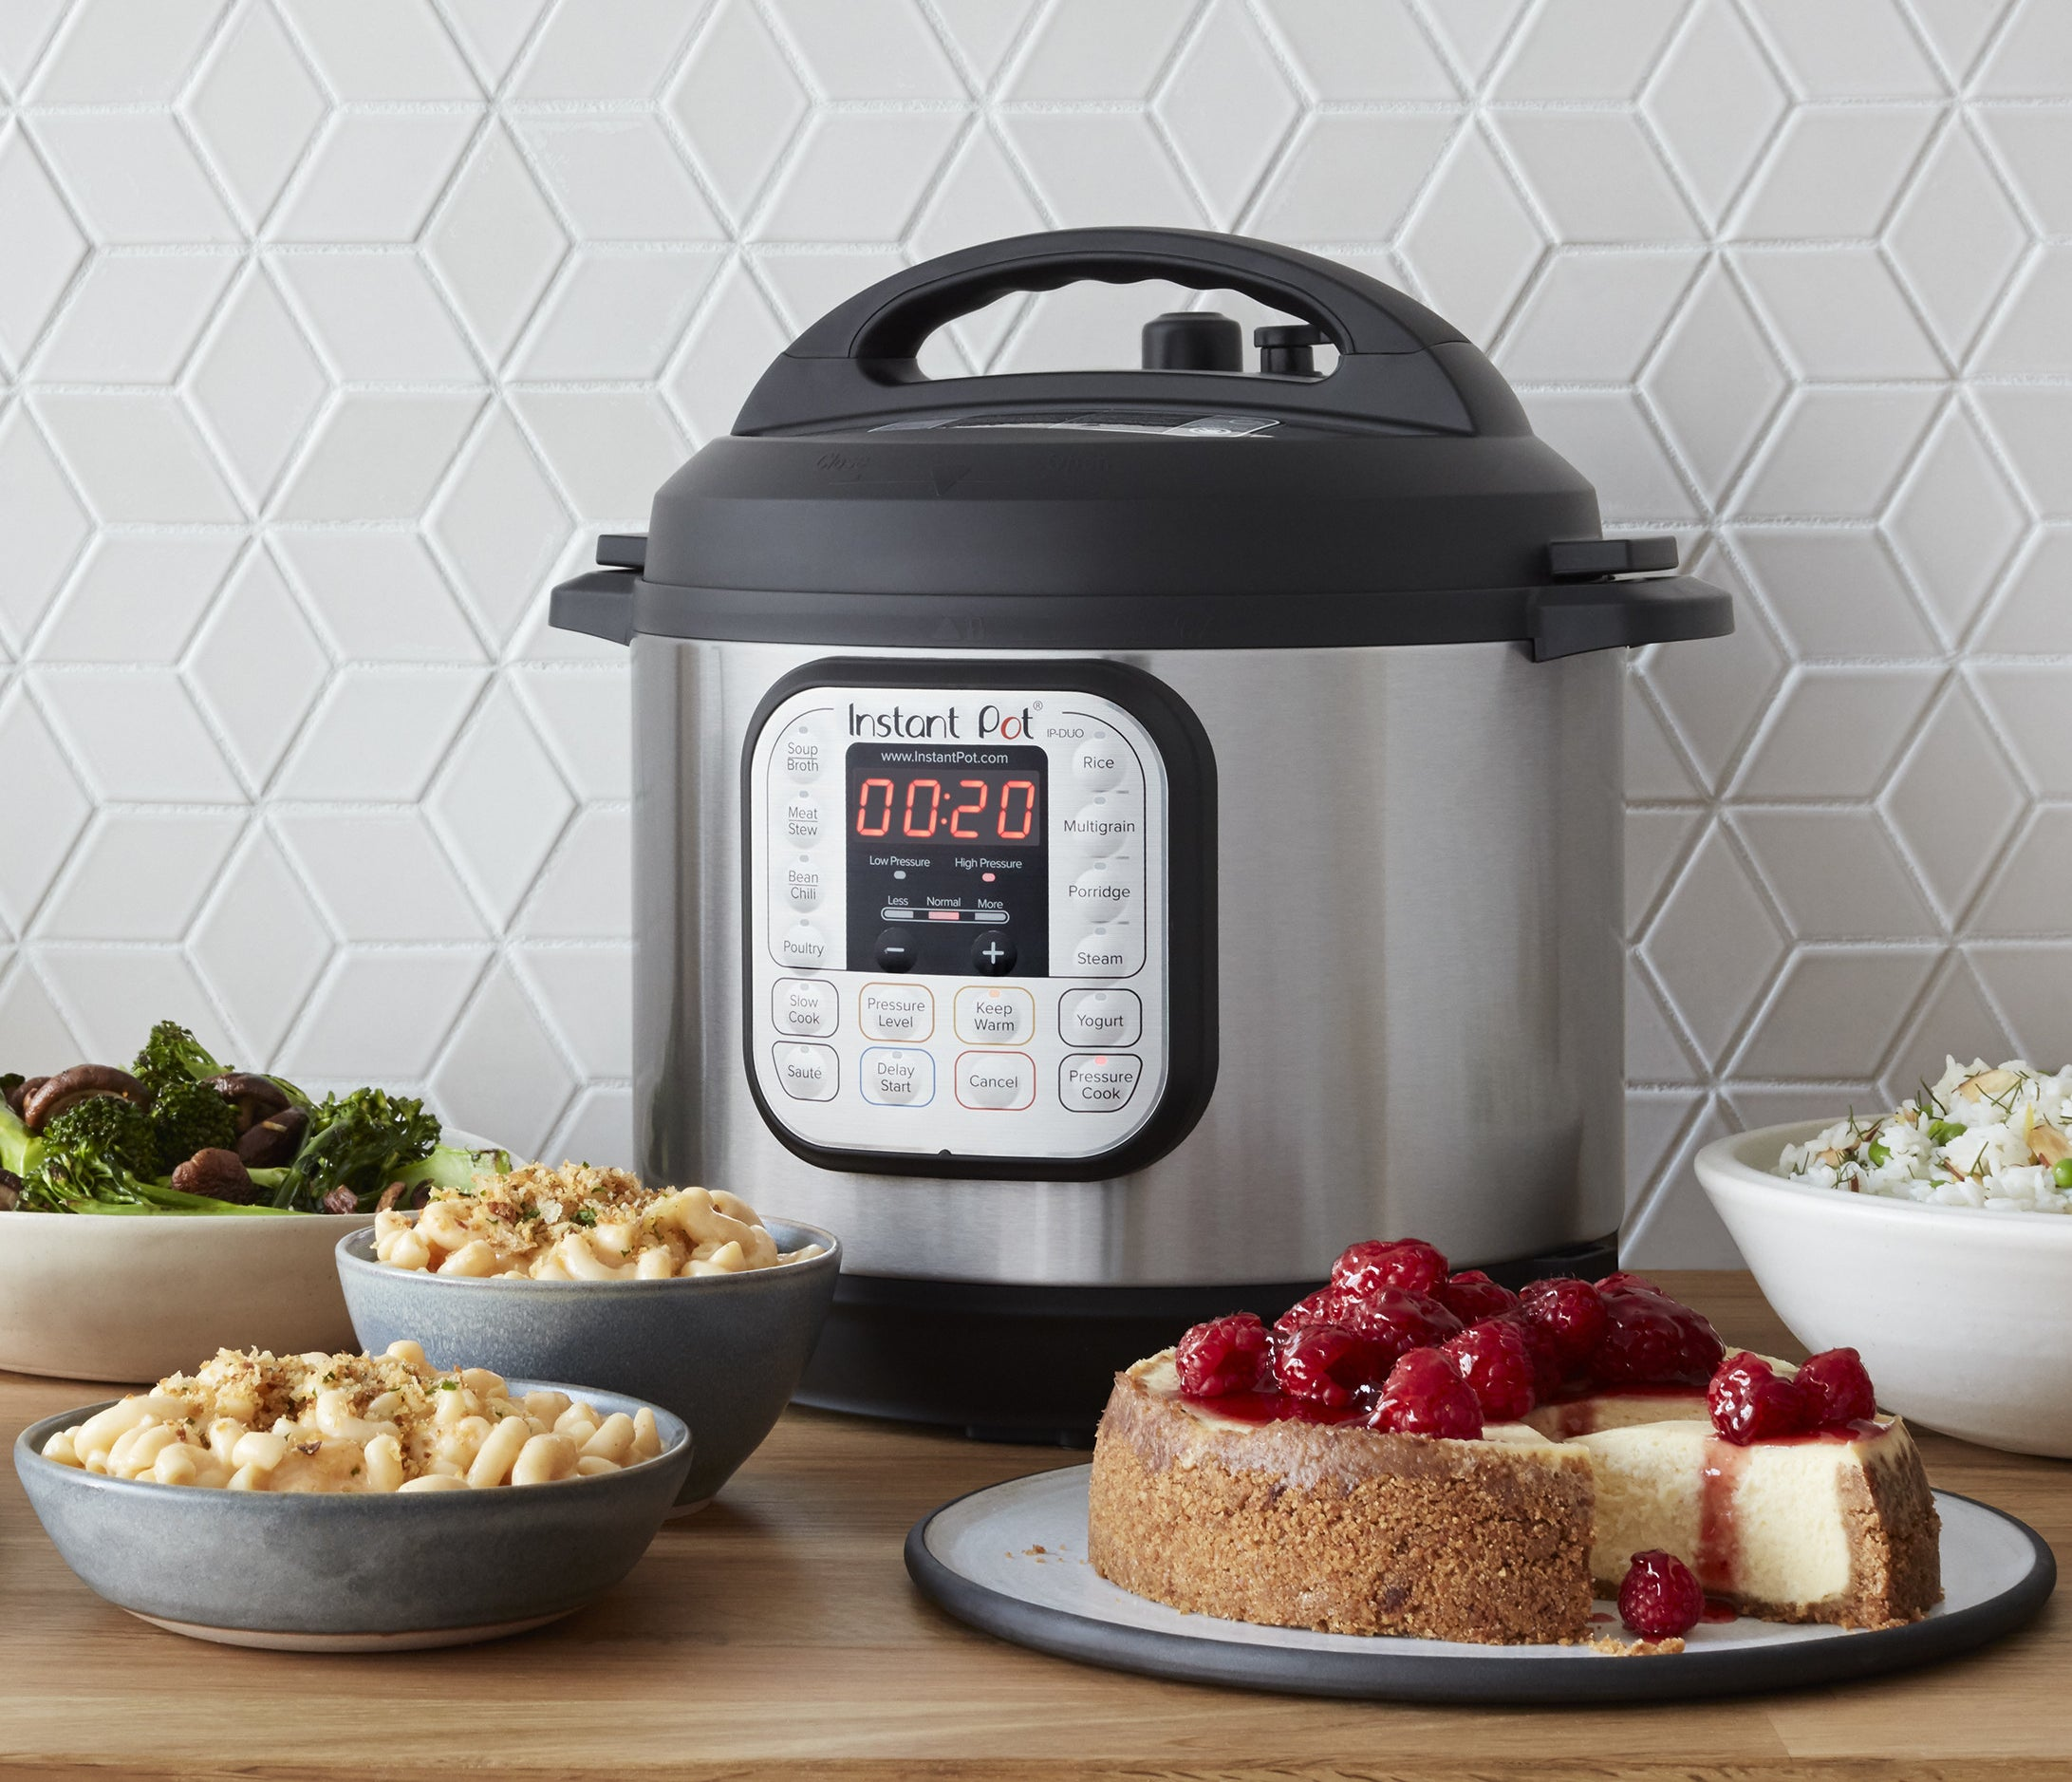 The instant pot on a kitchen table covered in plated food